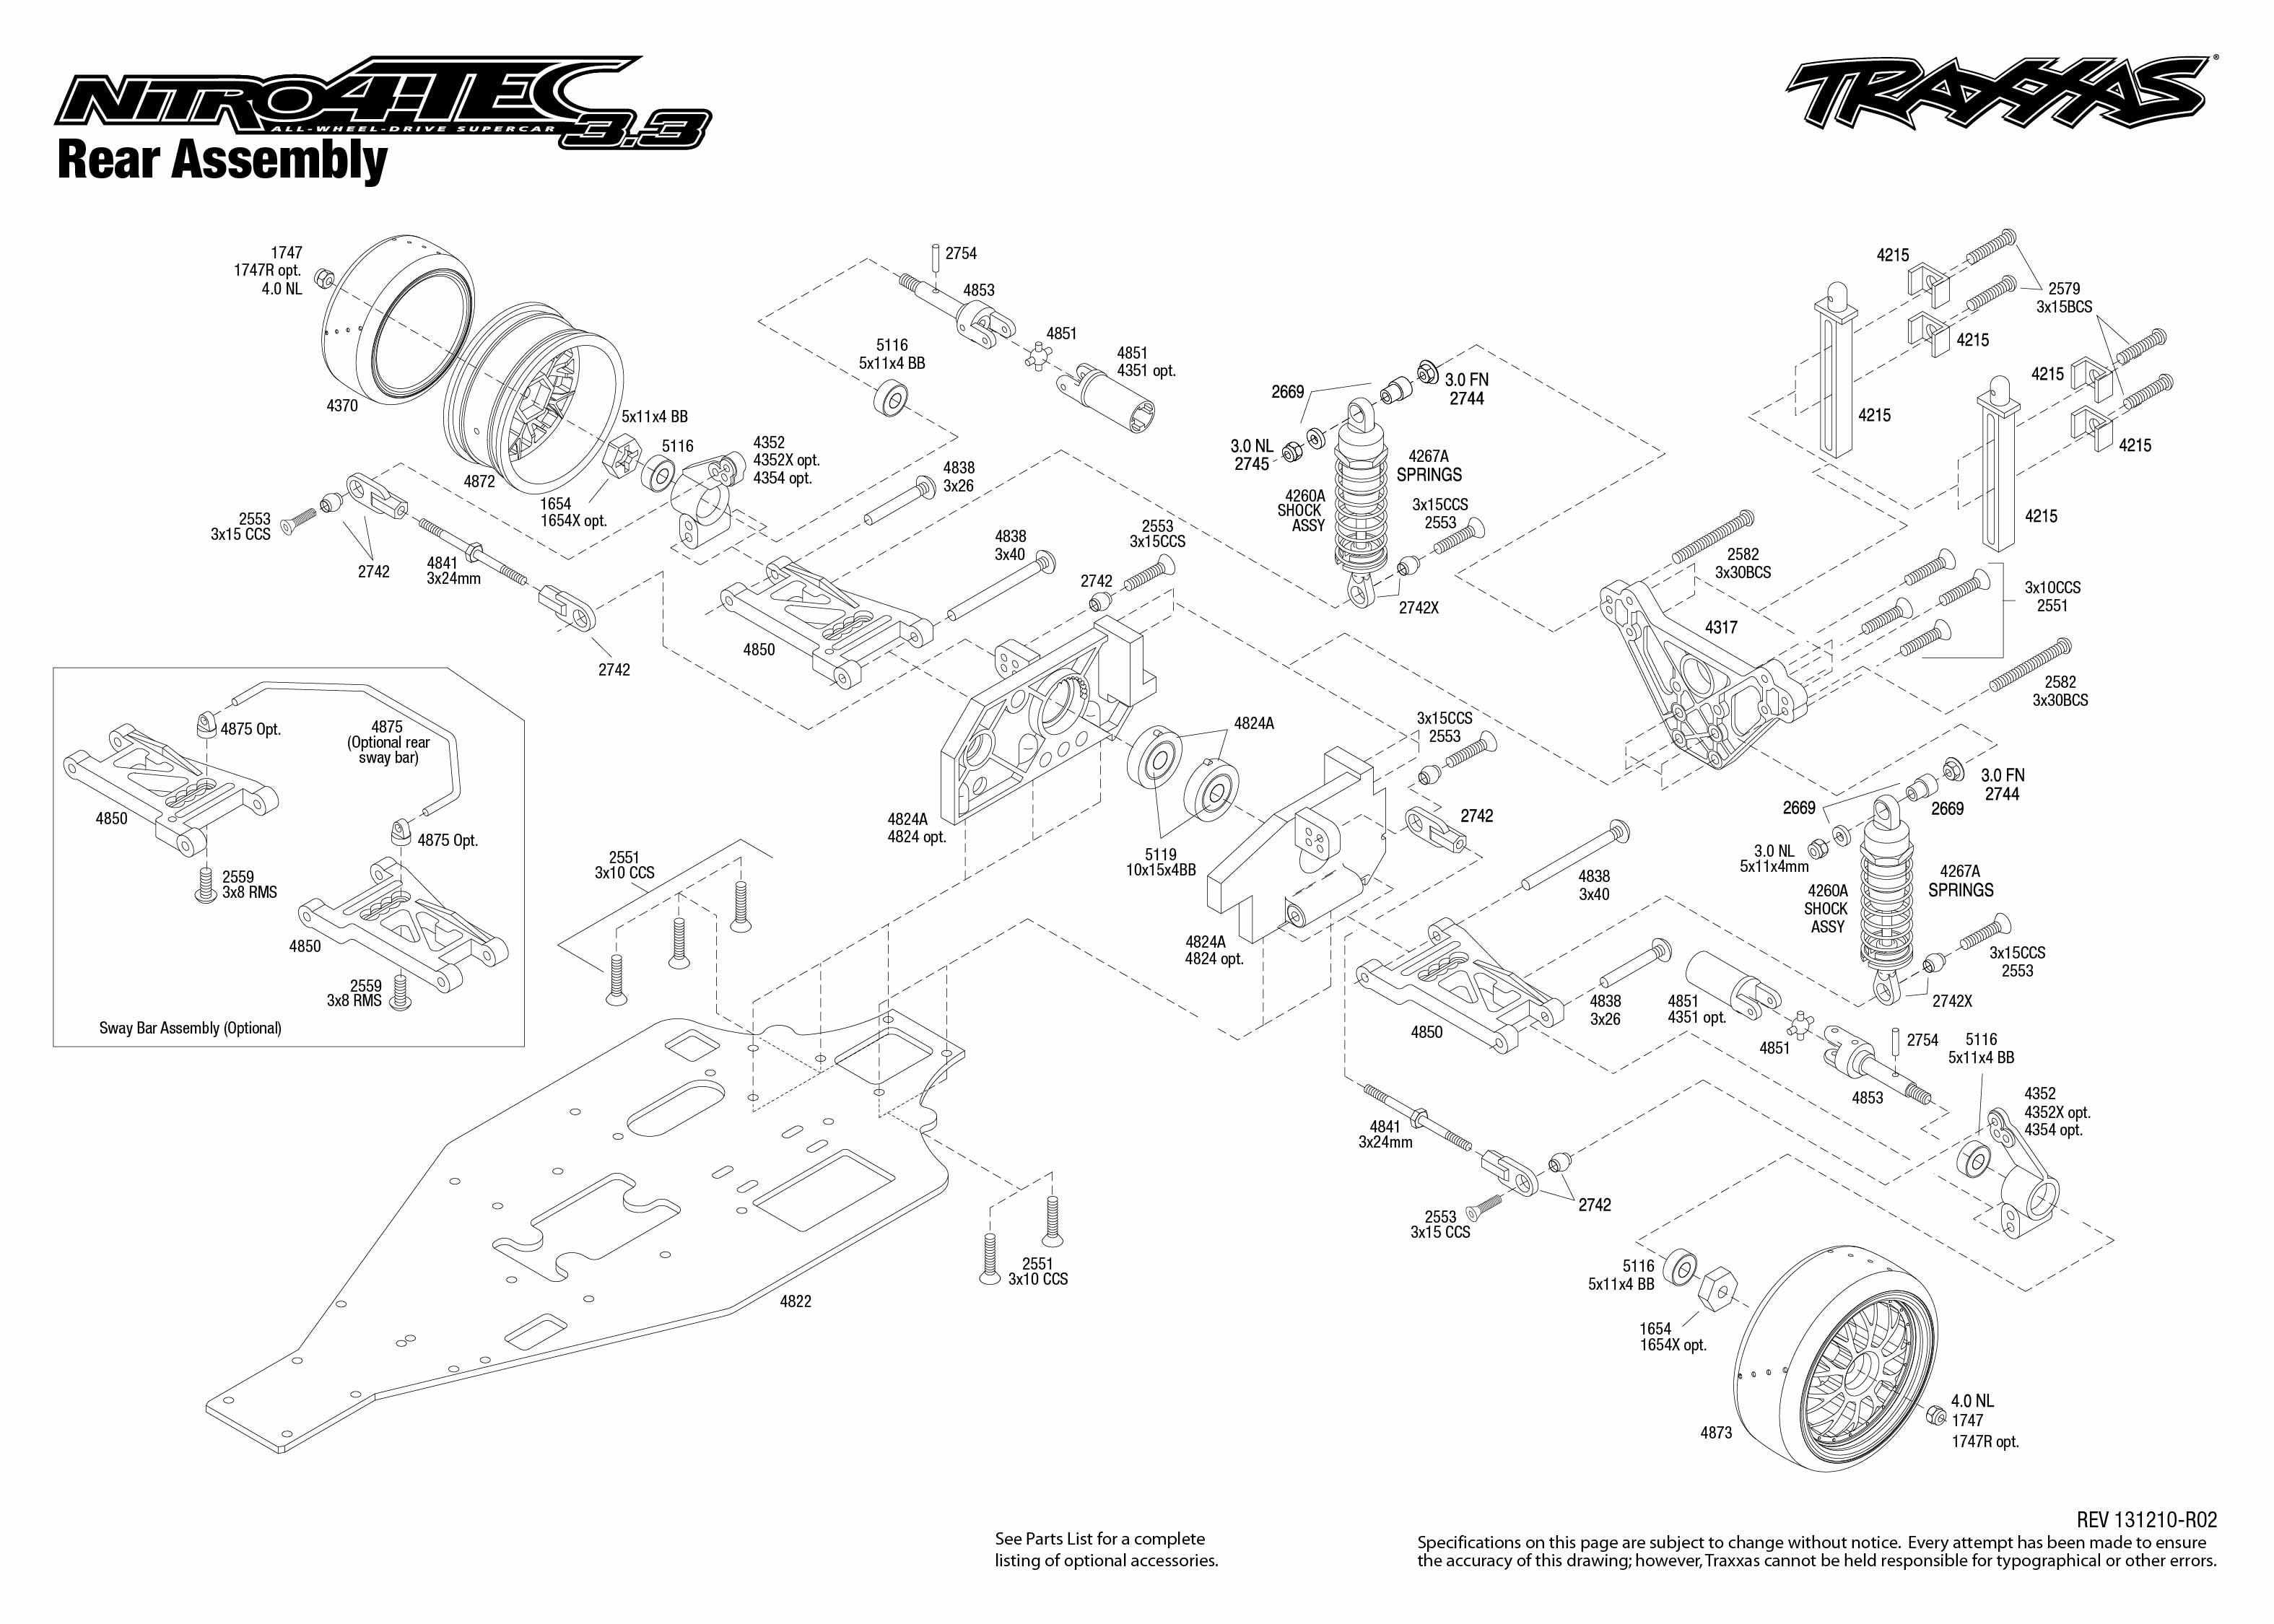 Traxxas Nitro Rustler Exploded Diagram Excellent Electrical Wiring Parts Traxxas44094nitrorustler 4807 4 Tec 3 Rear Assembly Rh Com View